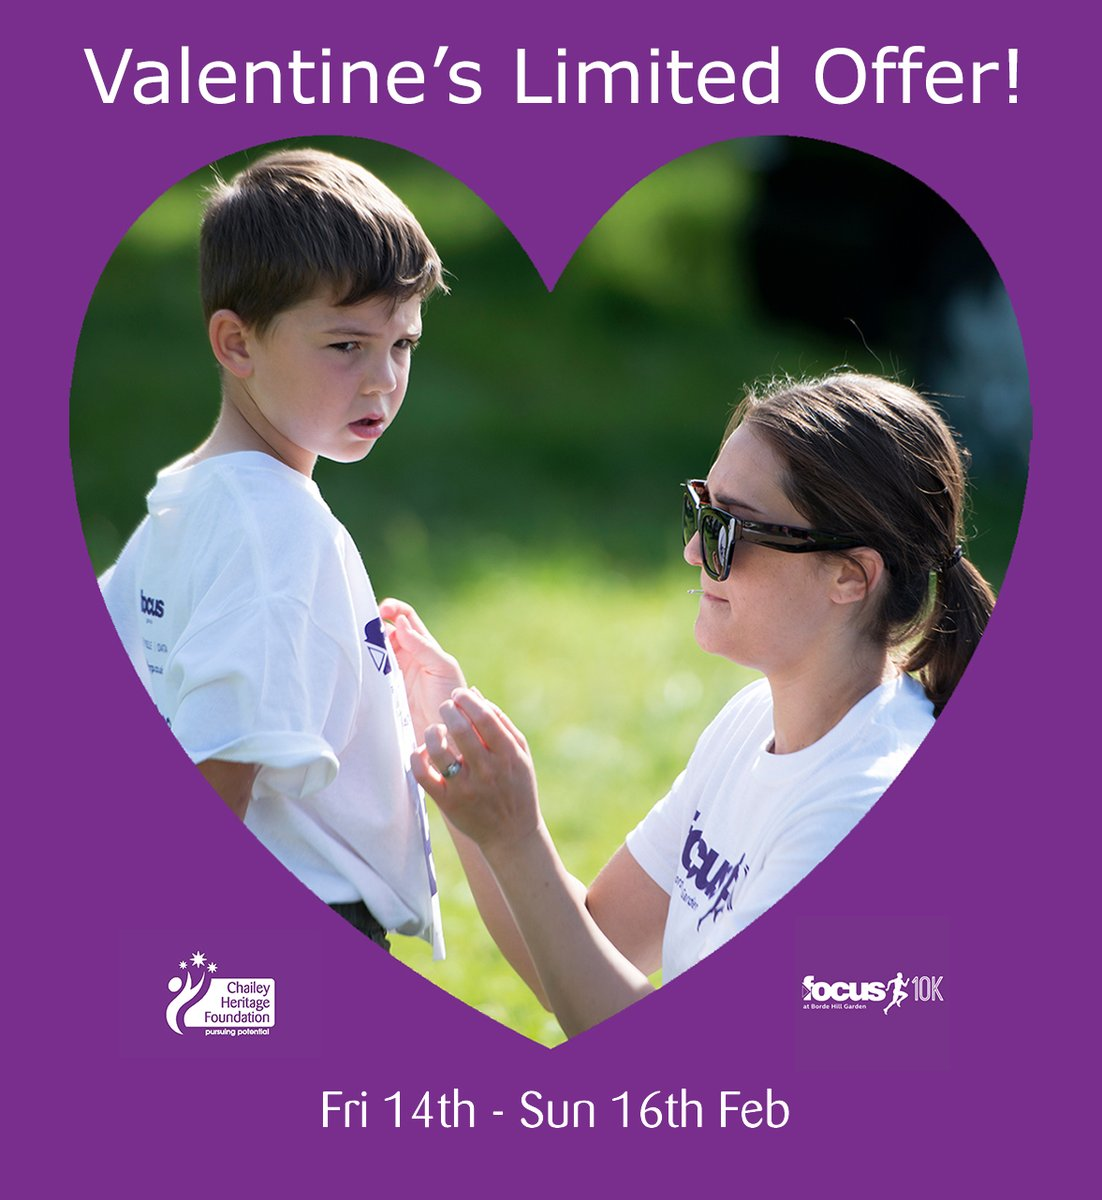 Use code: LOVE2RUN and get 10% off Early Bird tickets in the http://www.focus10k.com   Valid this weekend only   @jel_fitness @focusgrp_uk  #Focus10K #BordeHill #Running #Charity #ChaileyHeritageFoundation #Sussex #Brighton #Runningmotivation #NotForProfit #Disabilitypic.twitter.com/5mmWiihLFm